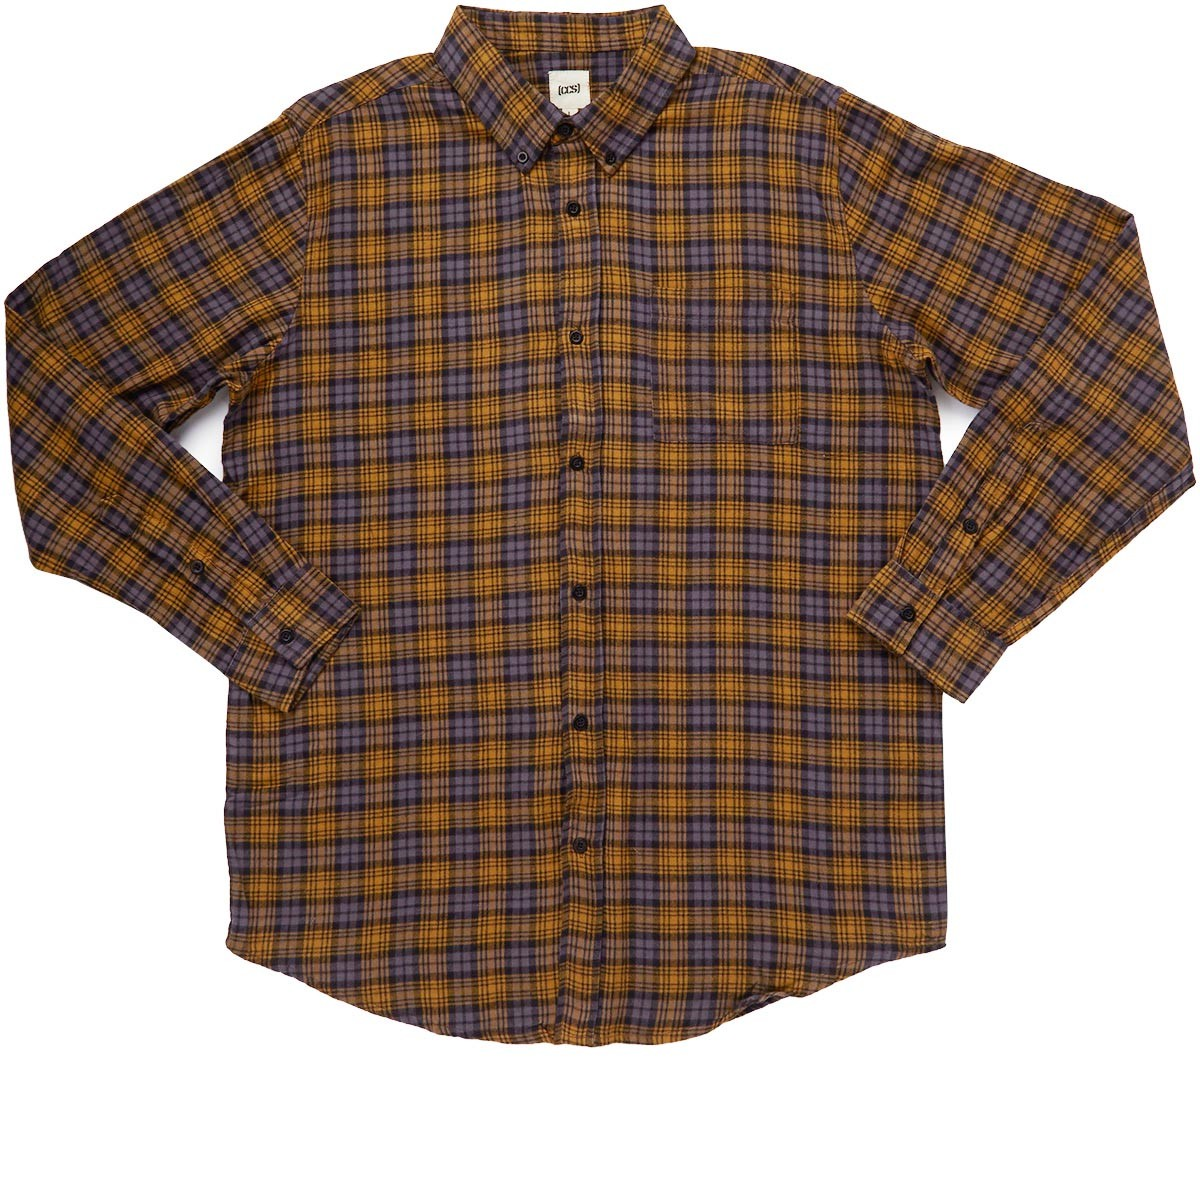 Ccs Flannel Long Sleeve Shirt Badlands Grey Plaid